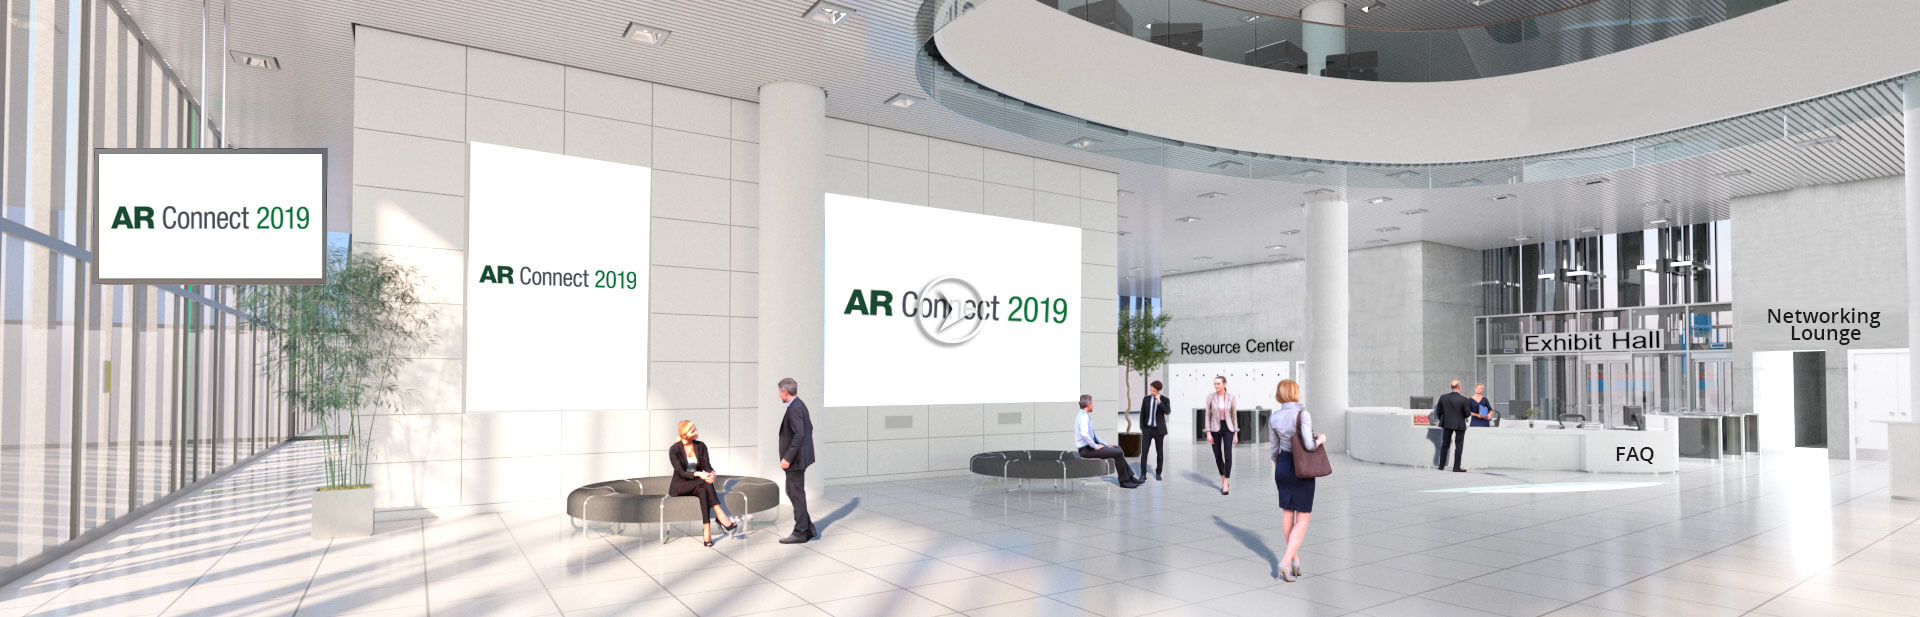 AR Connect 2019